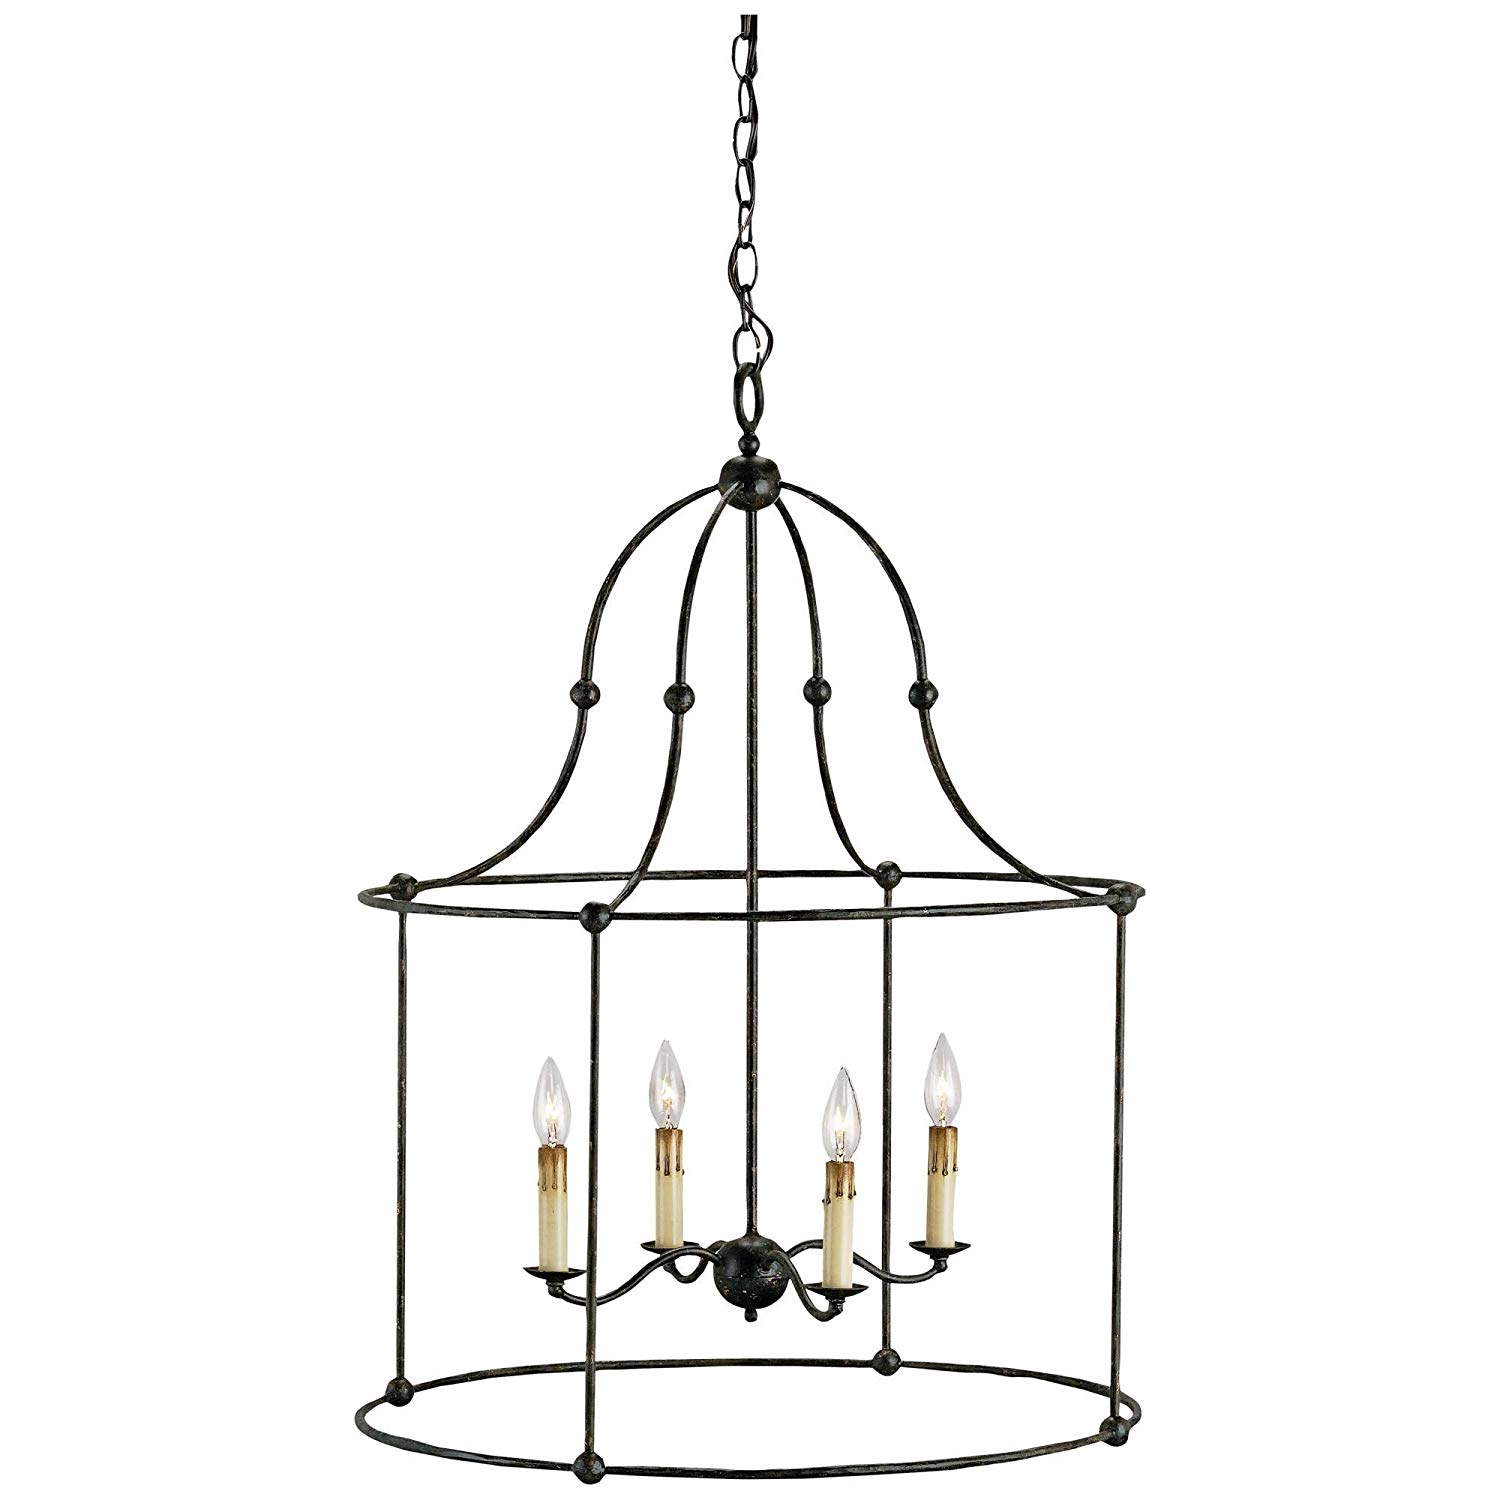 Currey and Company 9160 Fitzjames - Four Light Hanging Lantern, Mayfair Finish.jpg